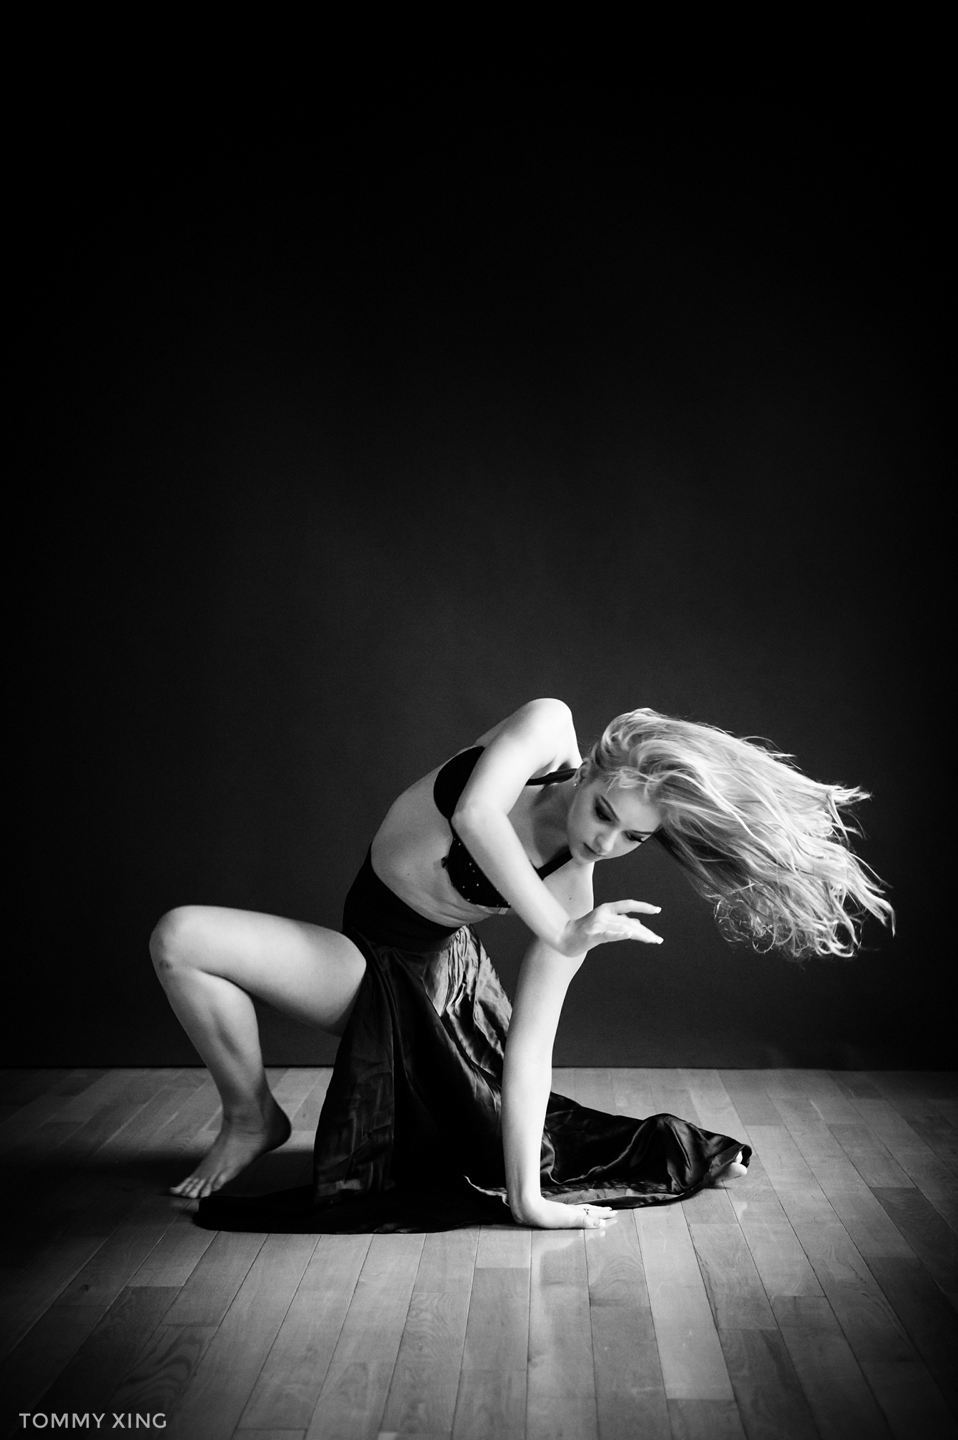 Los Angeles Dance photography - Haley - Tommy Xing04.JPG